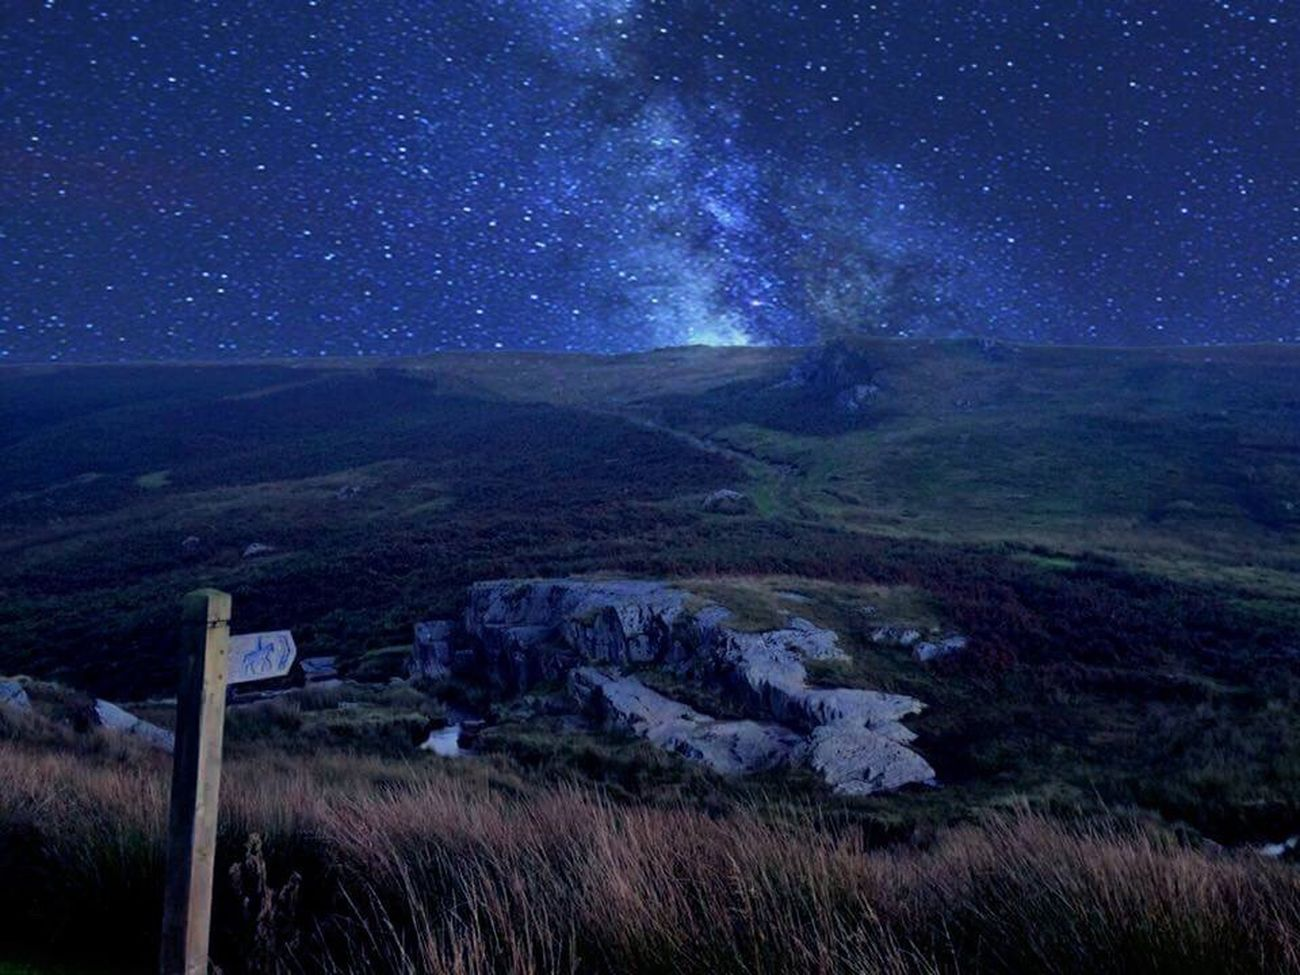 Travel Destinations Wales DarkestPart Darkest Hours Travelled9hours To Witness This! Sky 😚 Nightphotography Fieldscape Another World Spectacular Feeltheuniverse Feeling Inspired